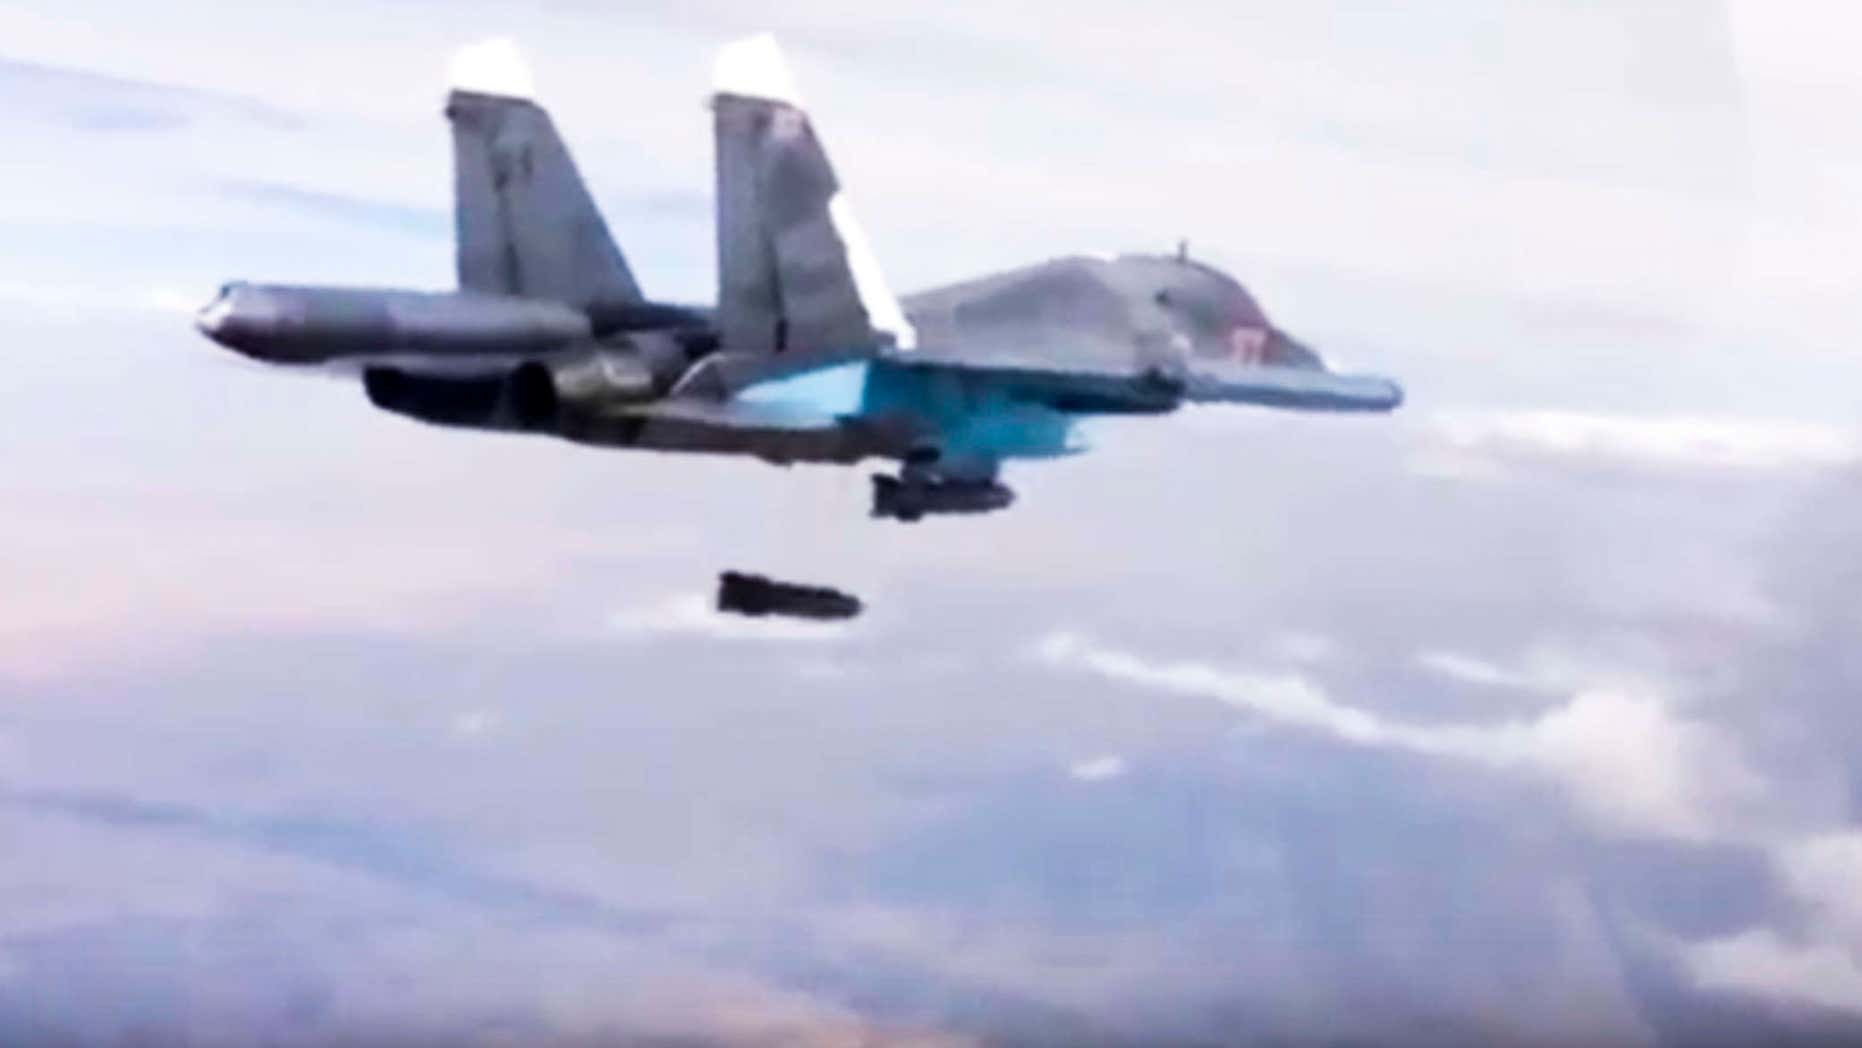 FILE - In this Dec. 9, 2015 file photo made from video footage provided by the Russian Defense Ministry, a Russian Su-34 bomber drops bombs on a target.